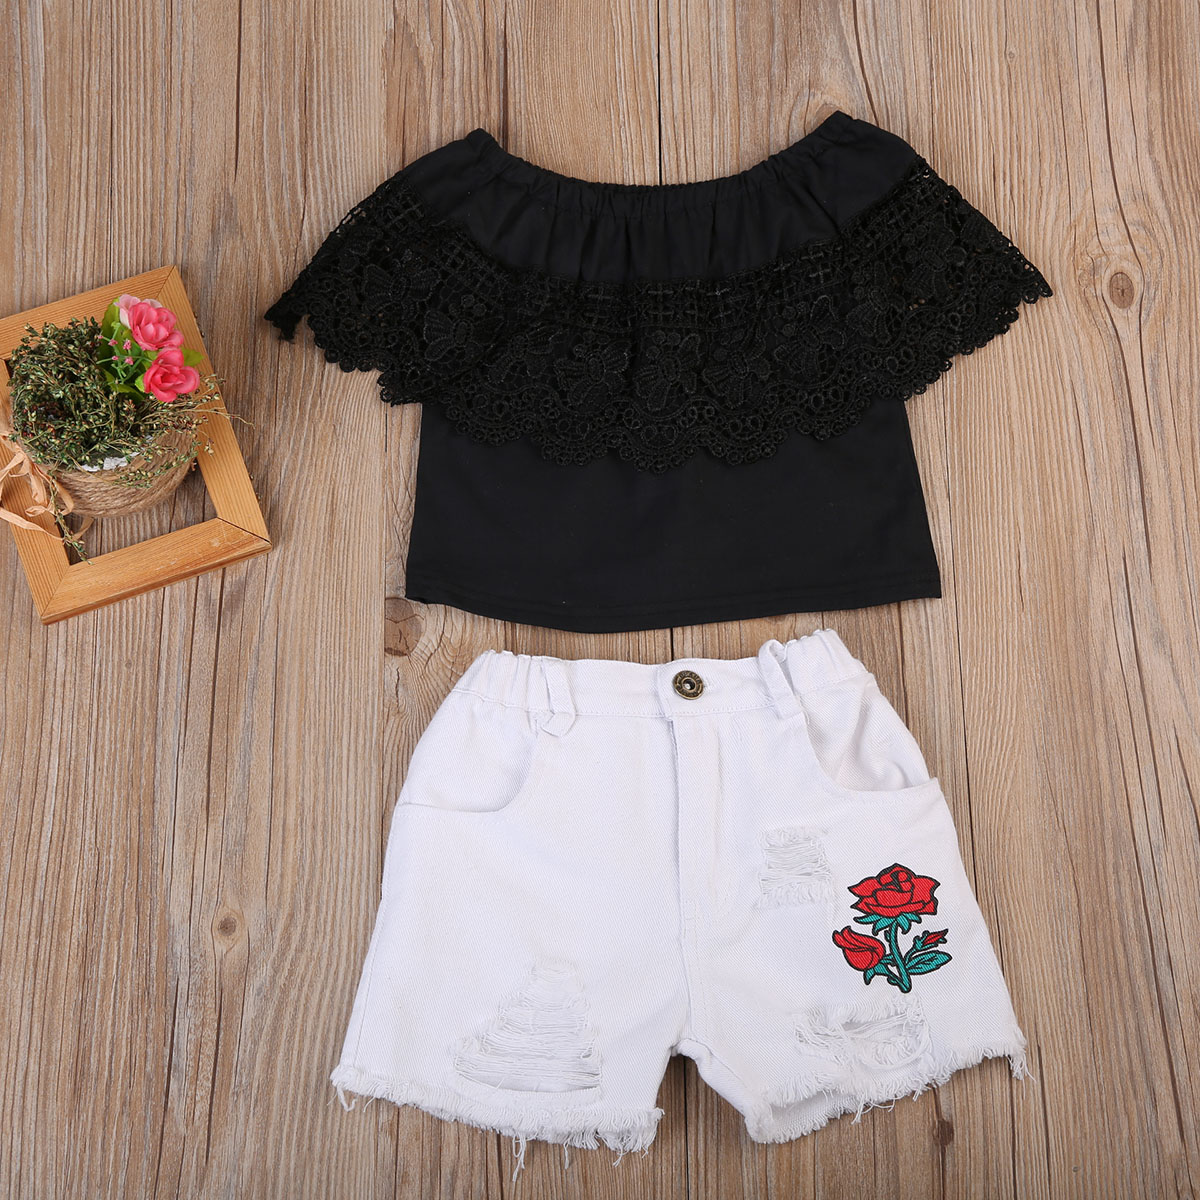 Summer Kids Baby Girls Off Shoulder Black Lace Tops+Ripped Denim Shorts 2pcs Outfits Clothes Set Embroidery Floral Clothing